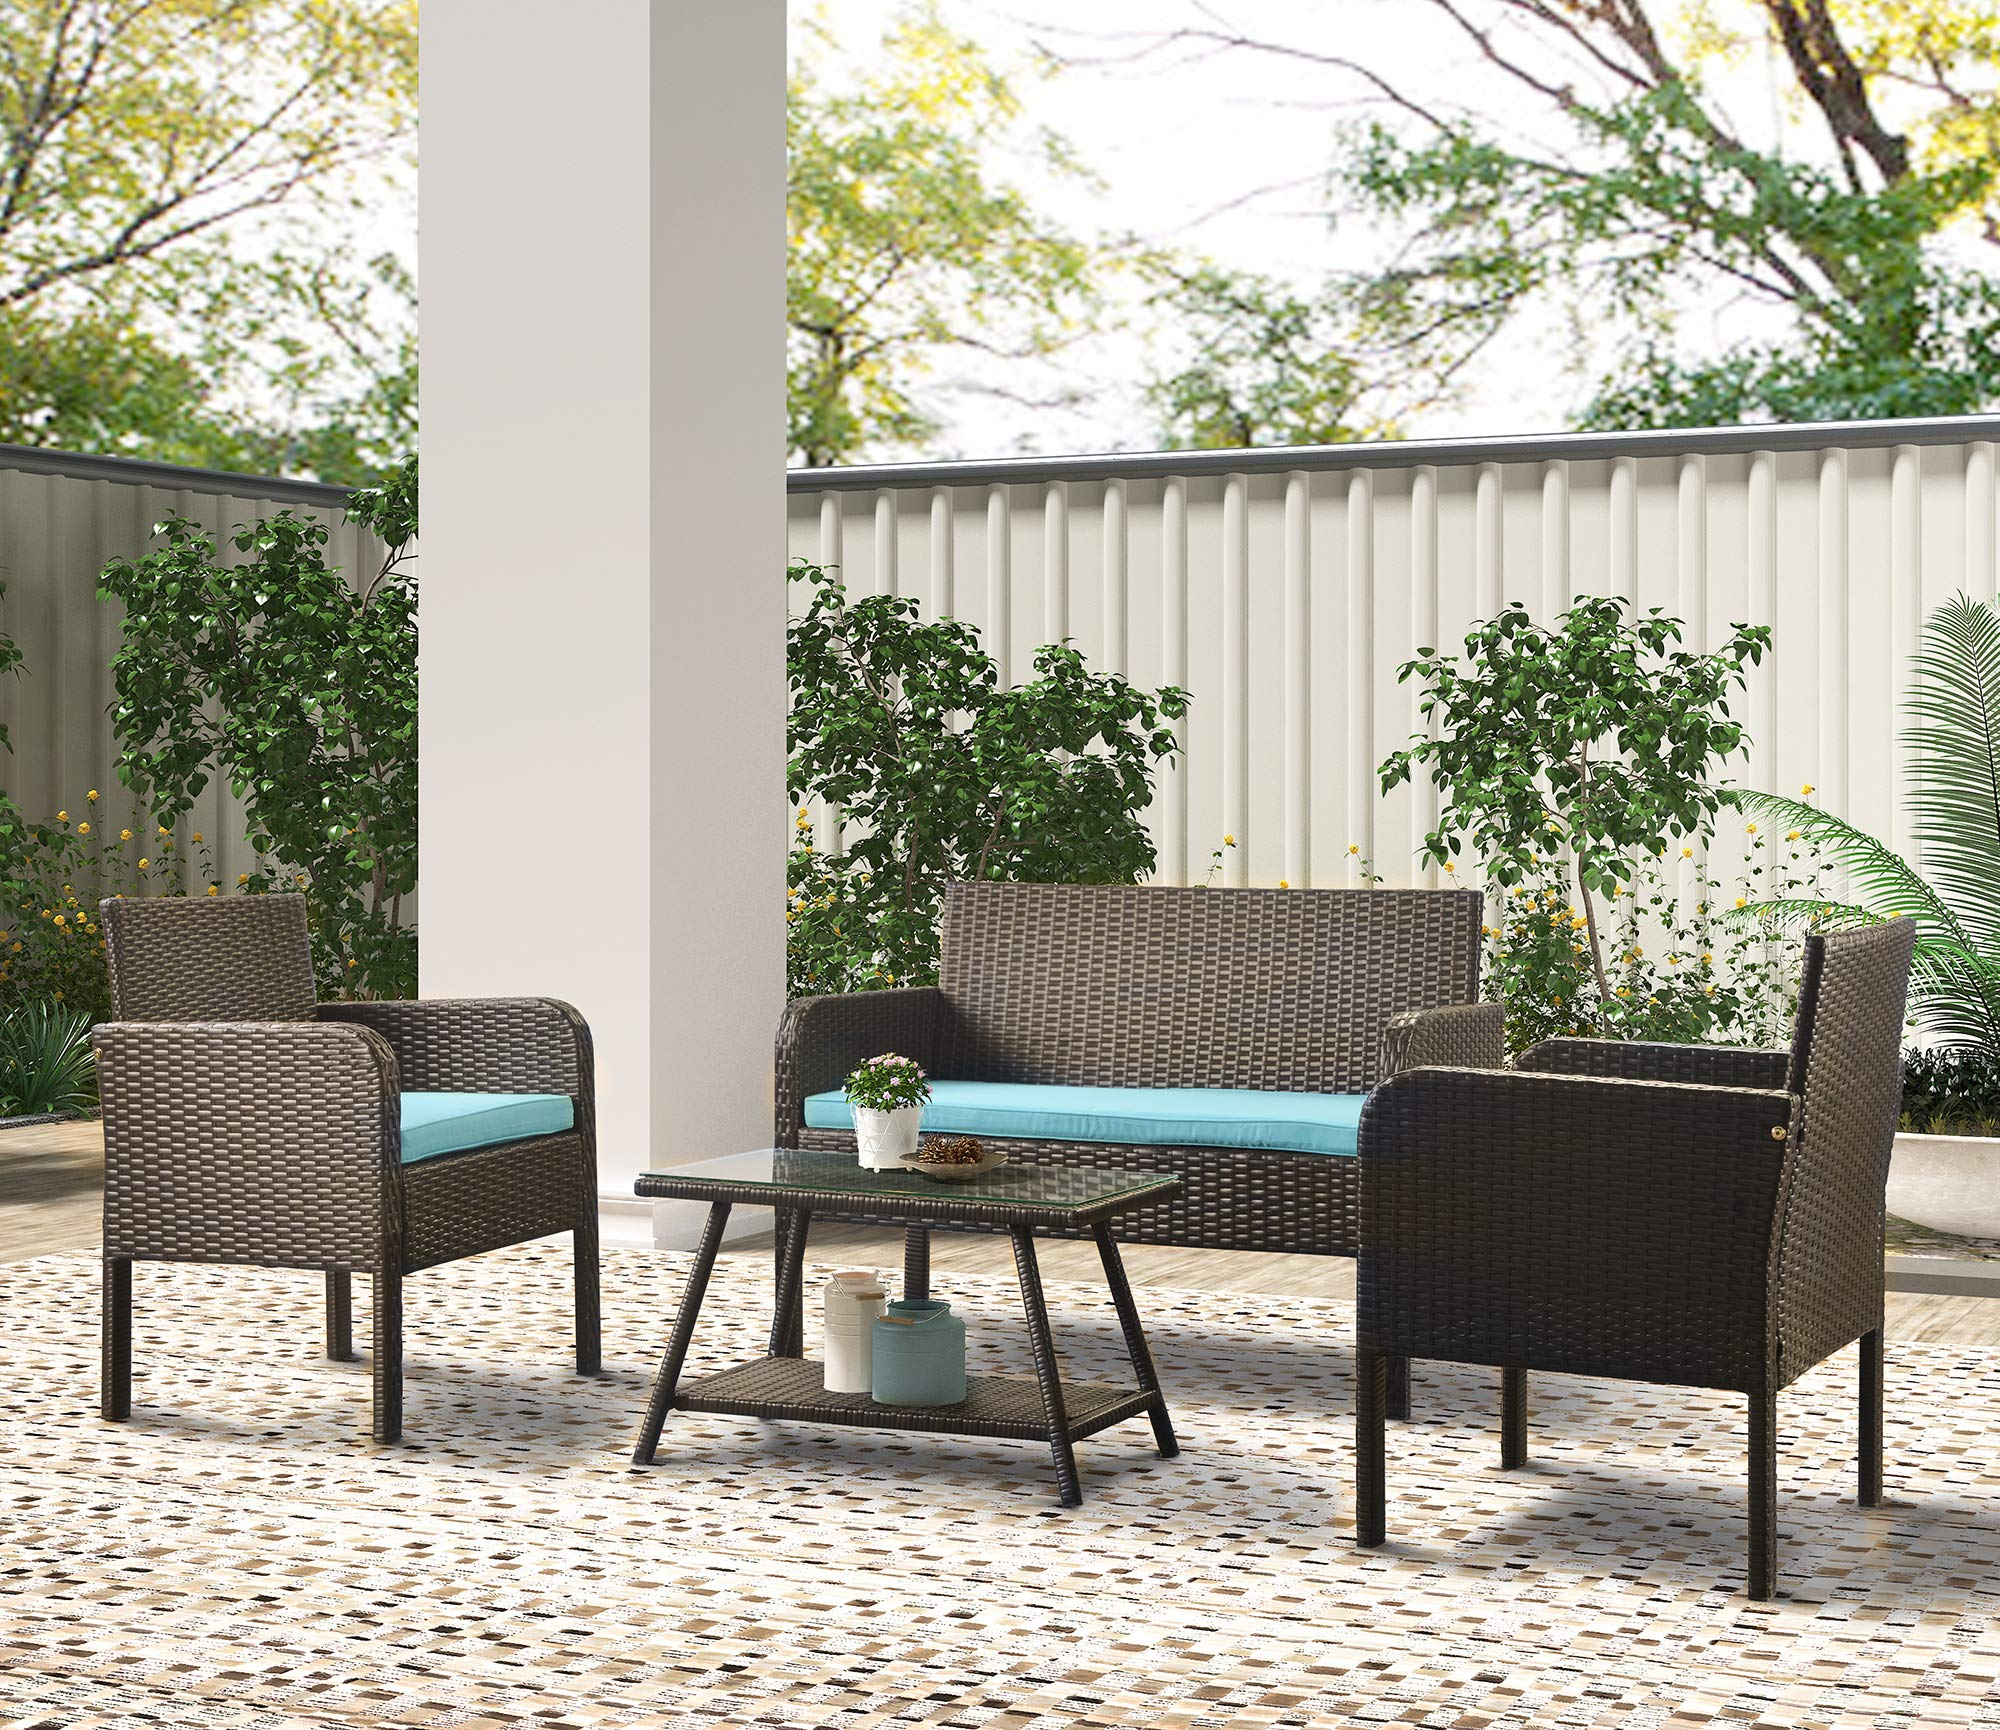 U Style 4 Piece Rattan Sofa Seating Group With Cushions Outdoor Ratten Sofa Buy Online In Angola At Angola Desertcart Com Productid 210342595